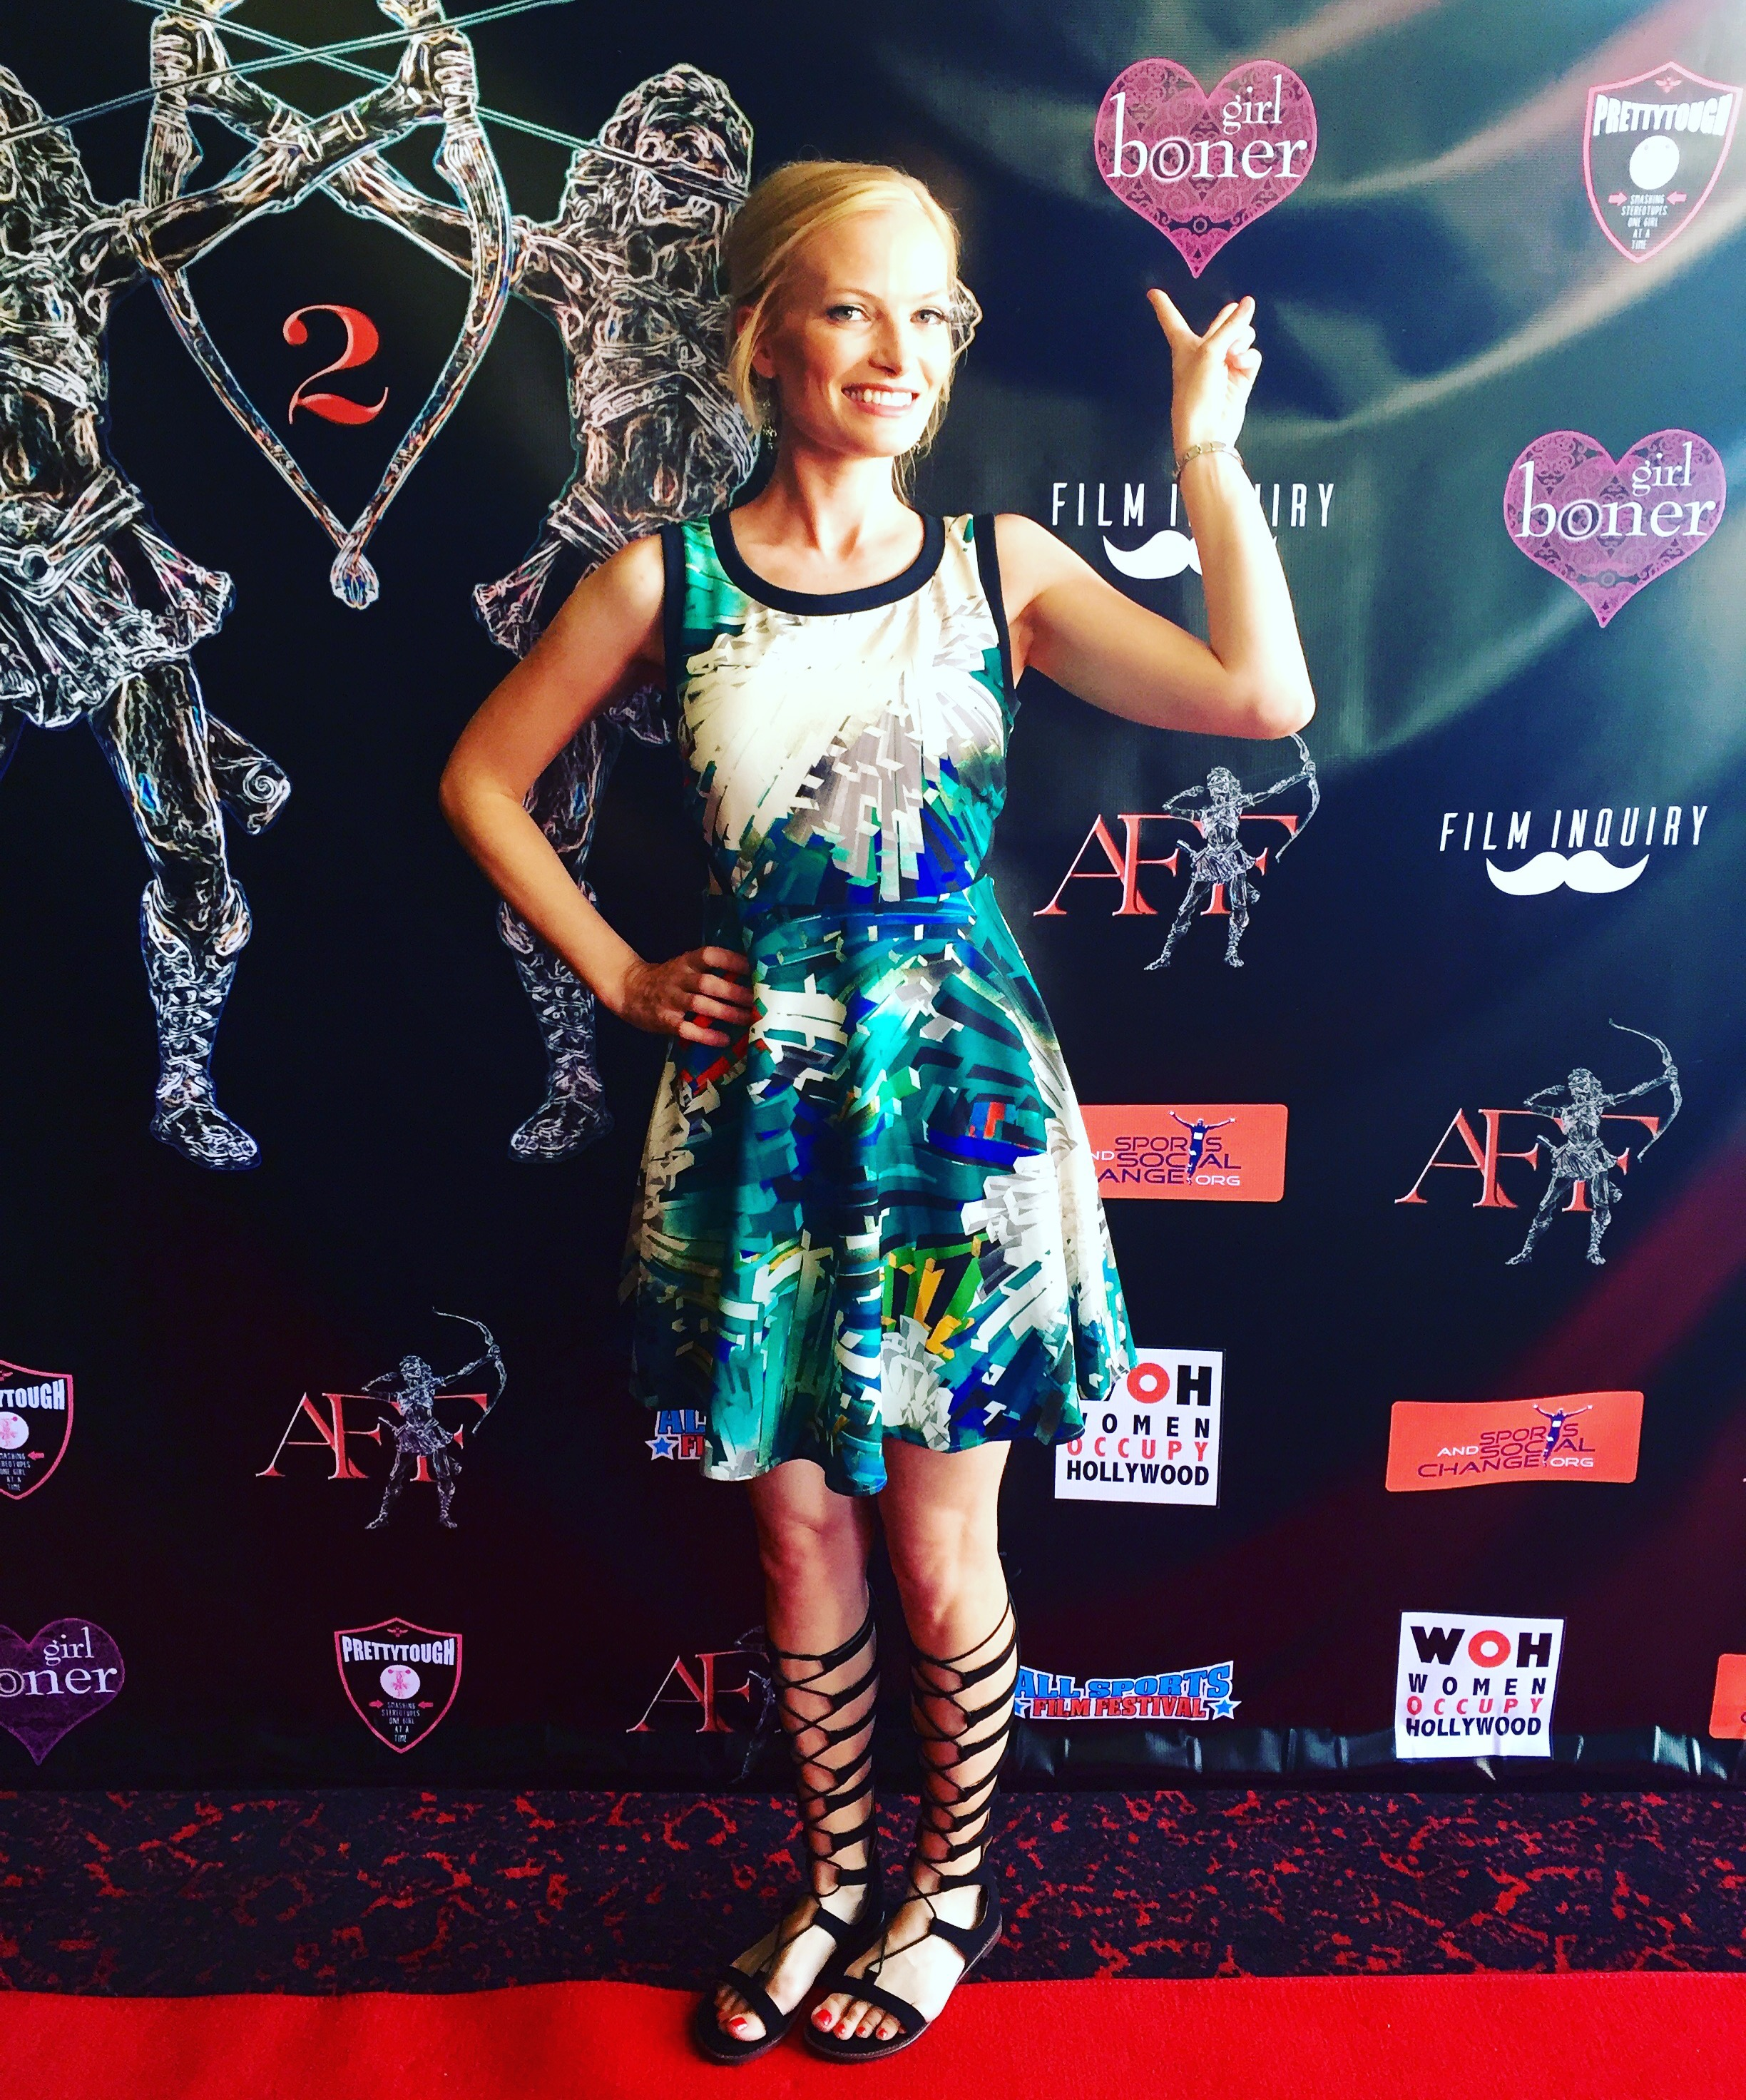 On the red carpet at the Artemis Women in Action Film Festival #grateful